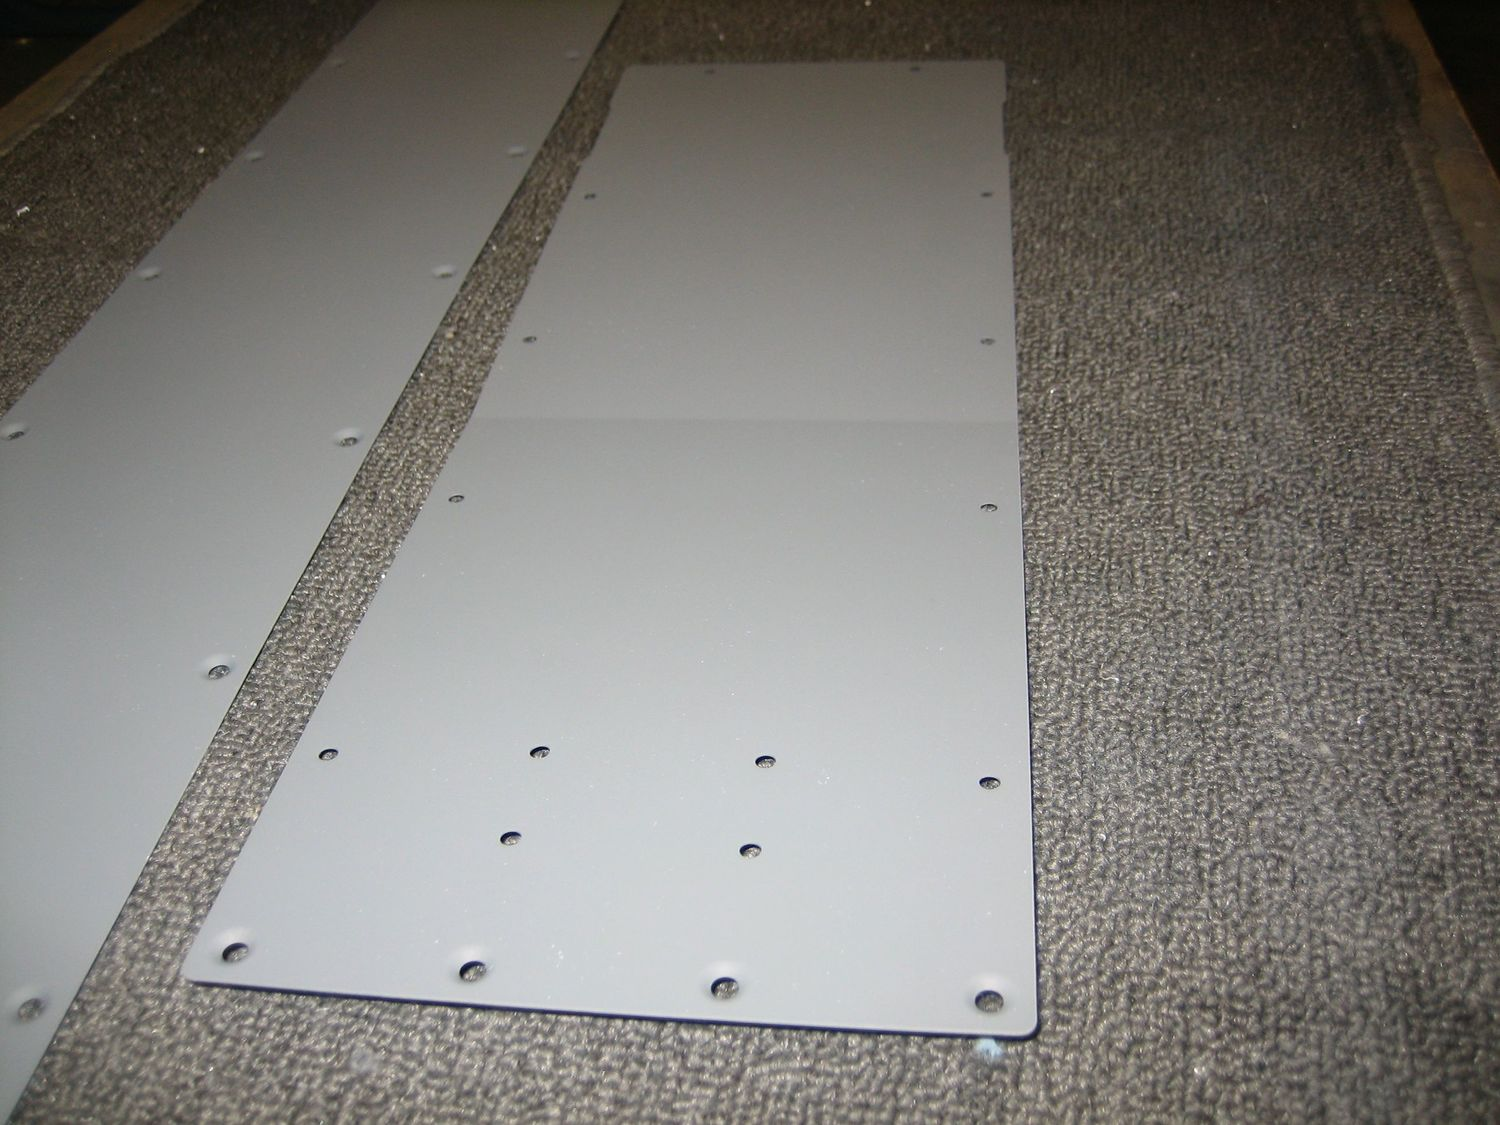 Access Panels and Floor Covers